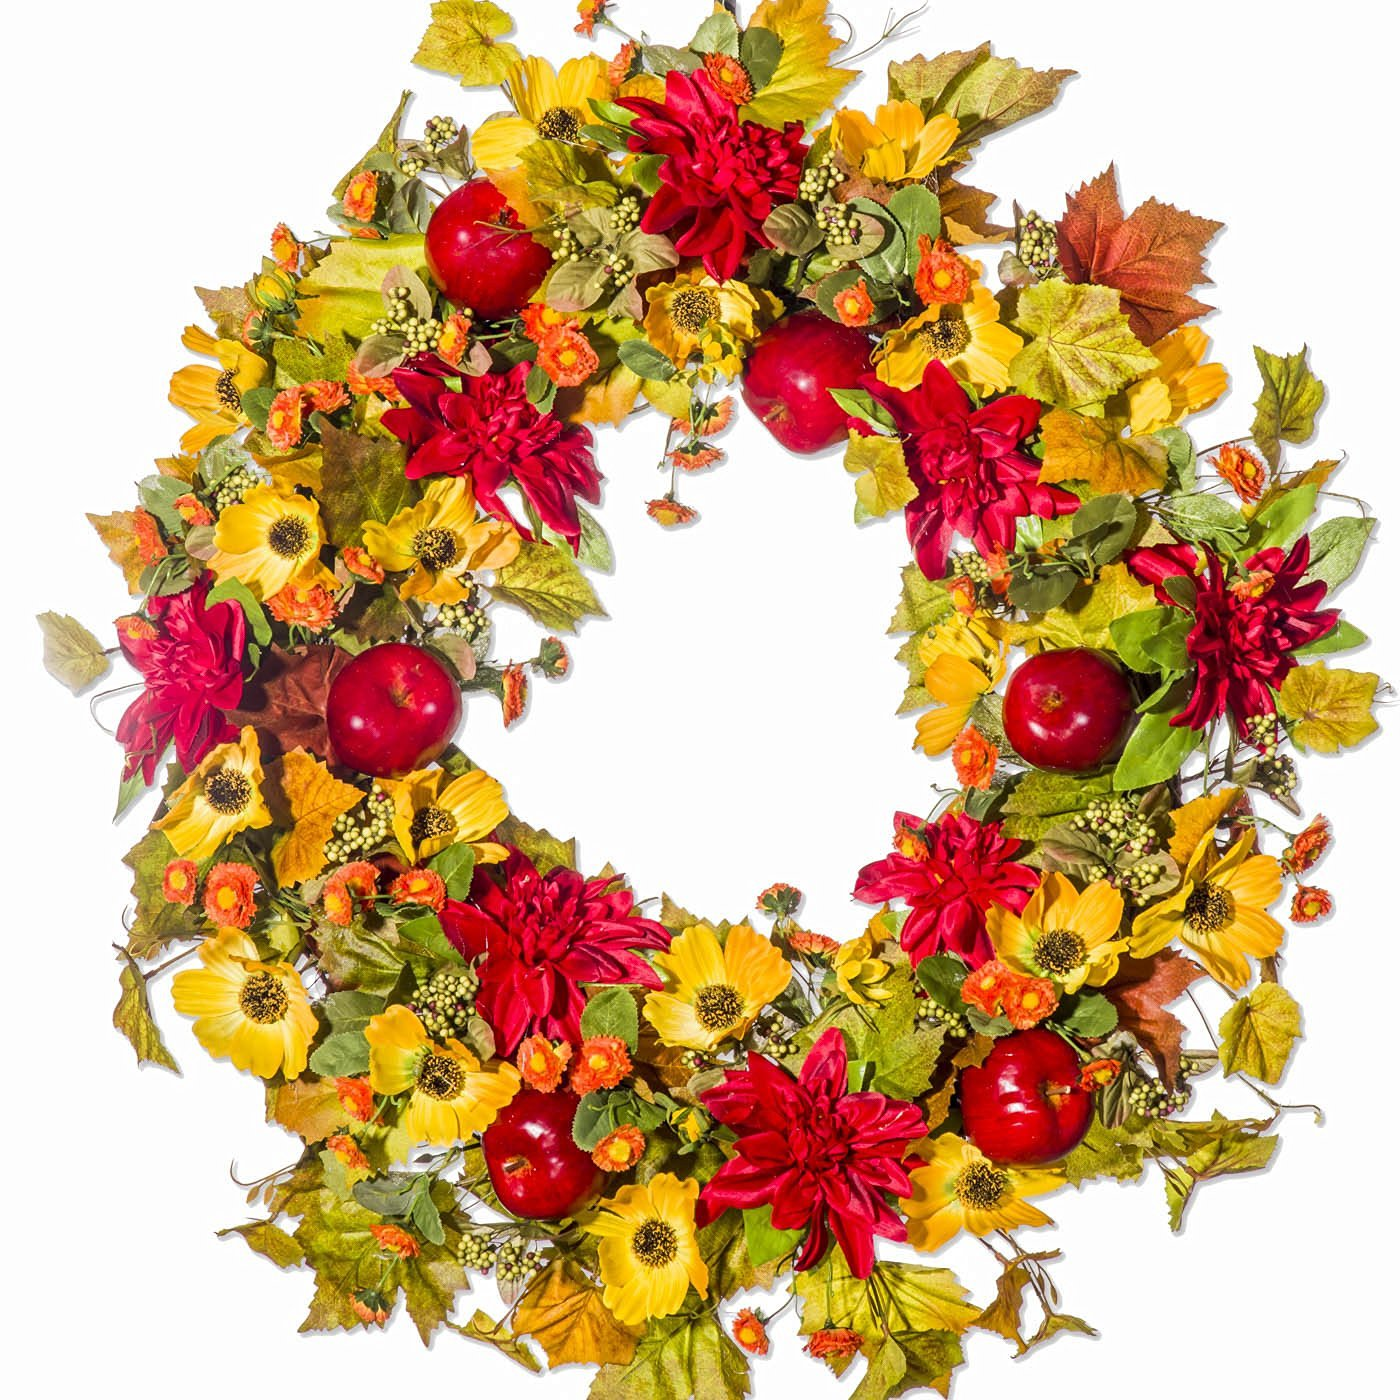 Mum, Poppy, Berry and Apple Fall Silk Wreath for the Autumn Season (30 inch)